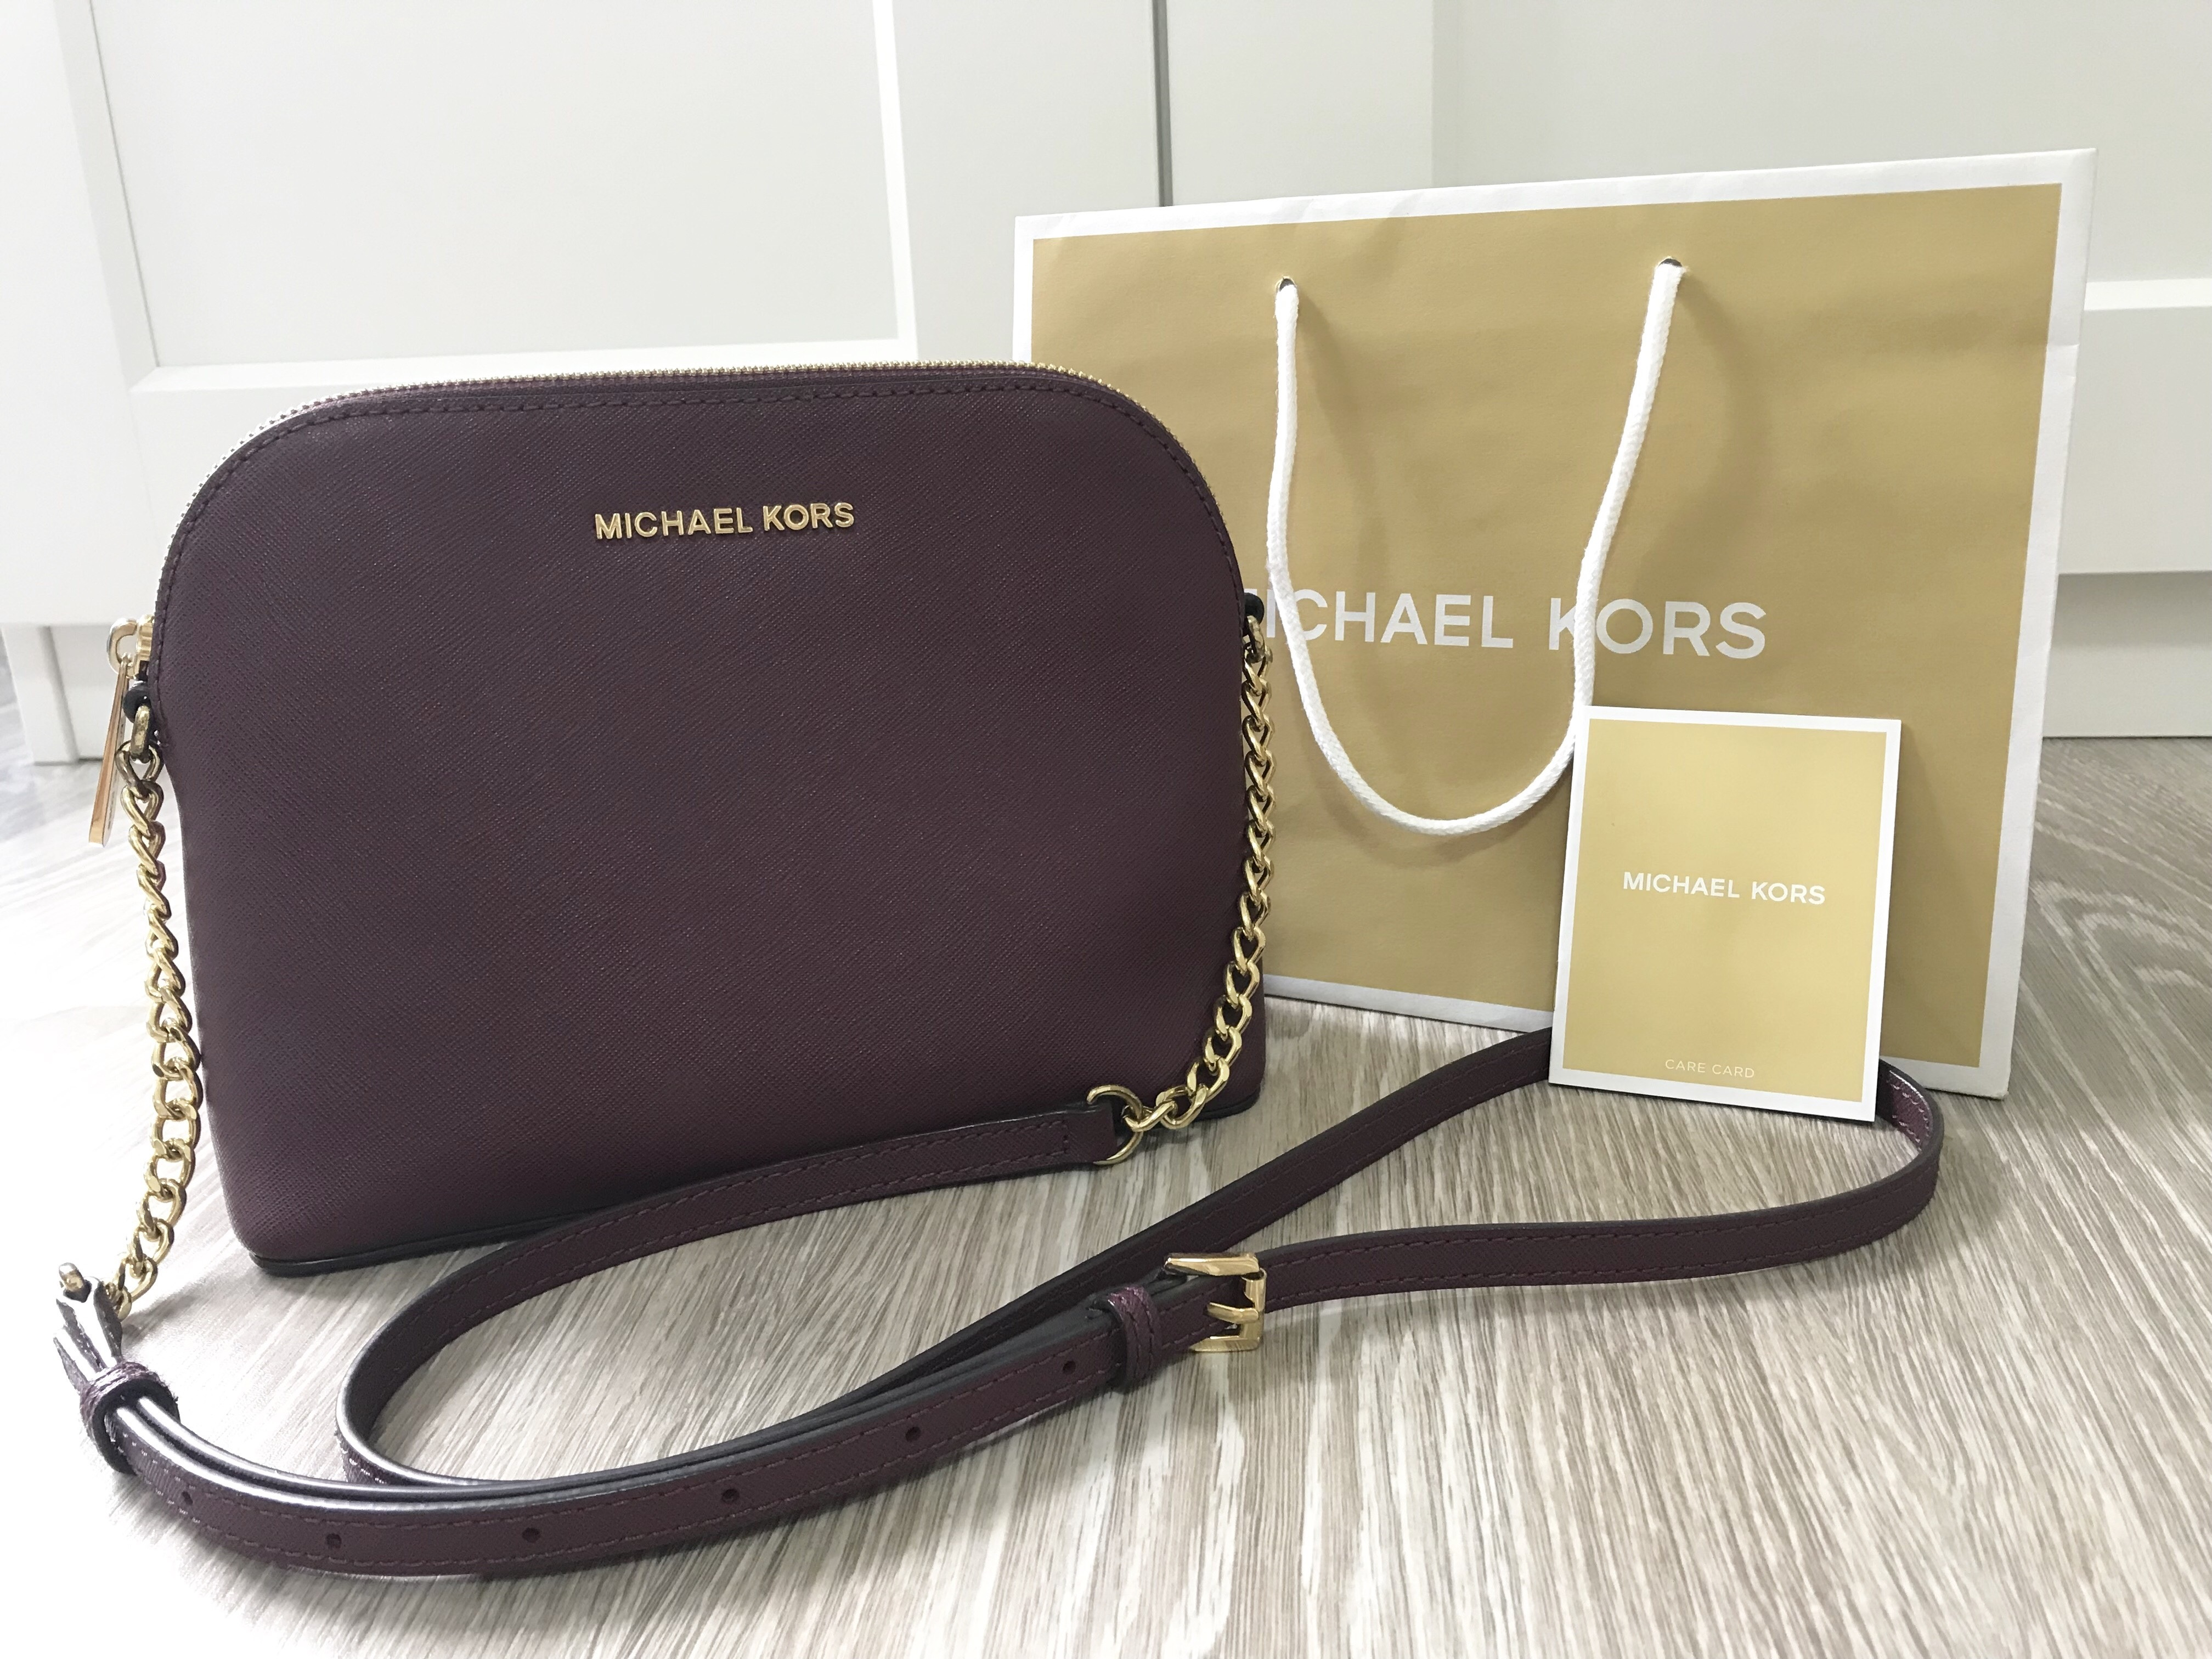 9908f7fc059d Michael Kors small Handbag Condition : 9/10 Item comes with care card &  paper bag Selling Price : SGD 135 / RM 400 Contact via WhatsApp :  +60132865296